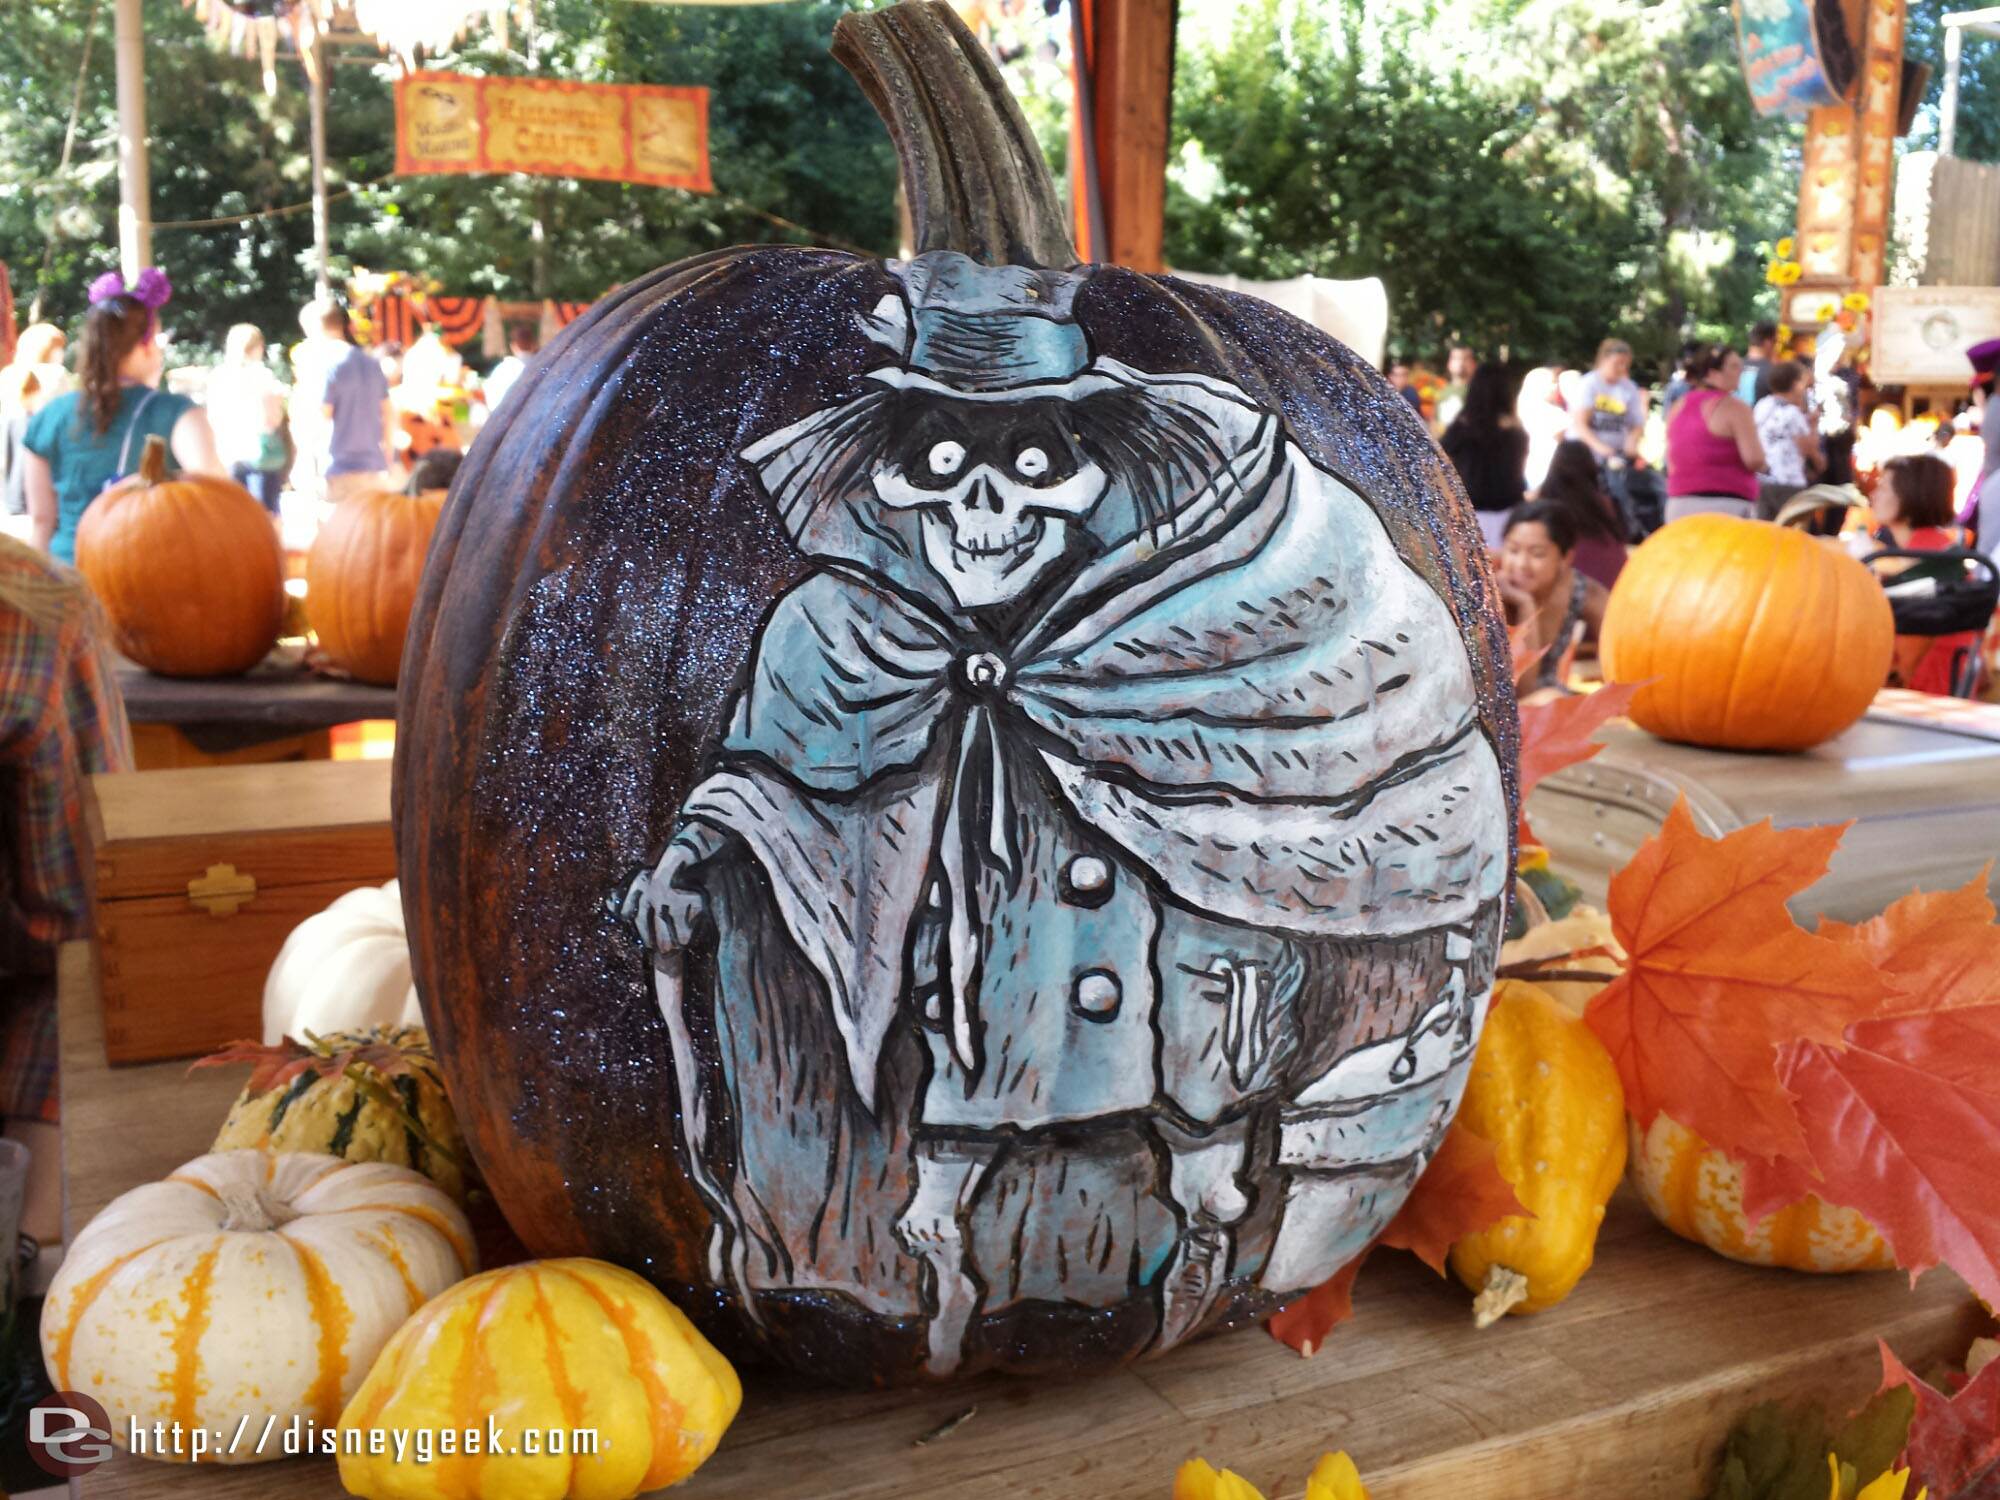 Hatbox Ghost pumpkin #HalloweenTime #Disneyland